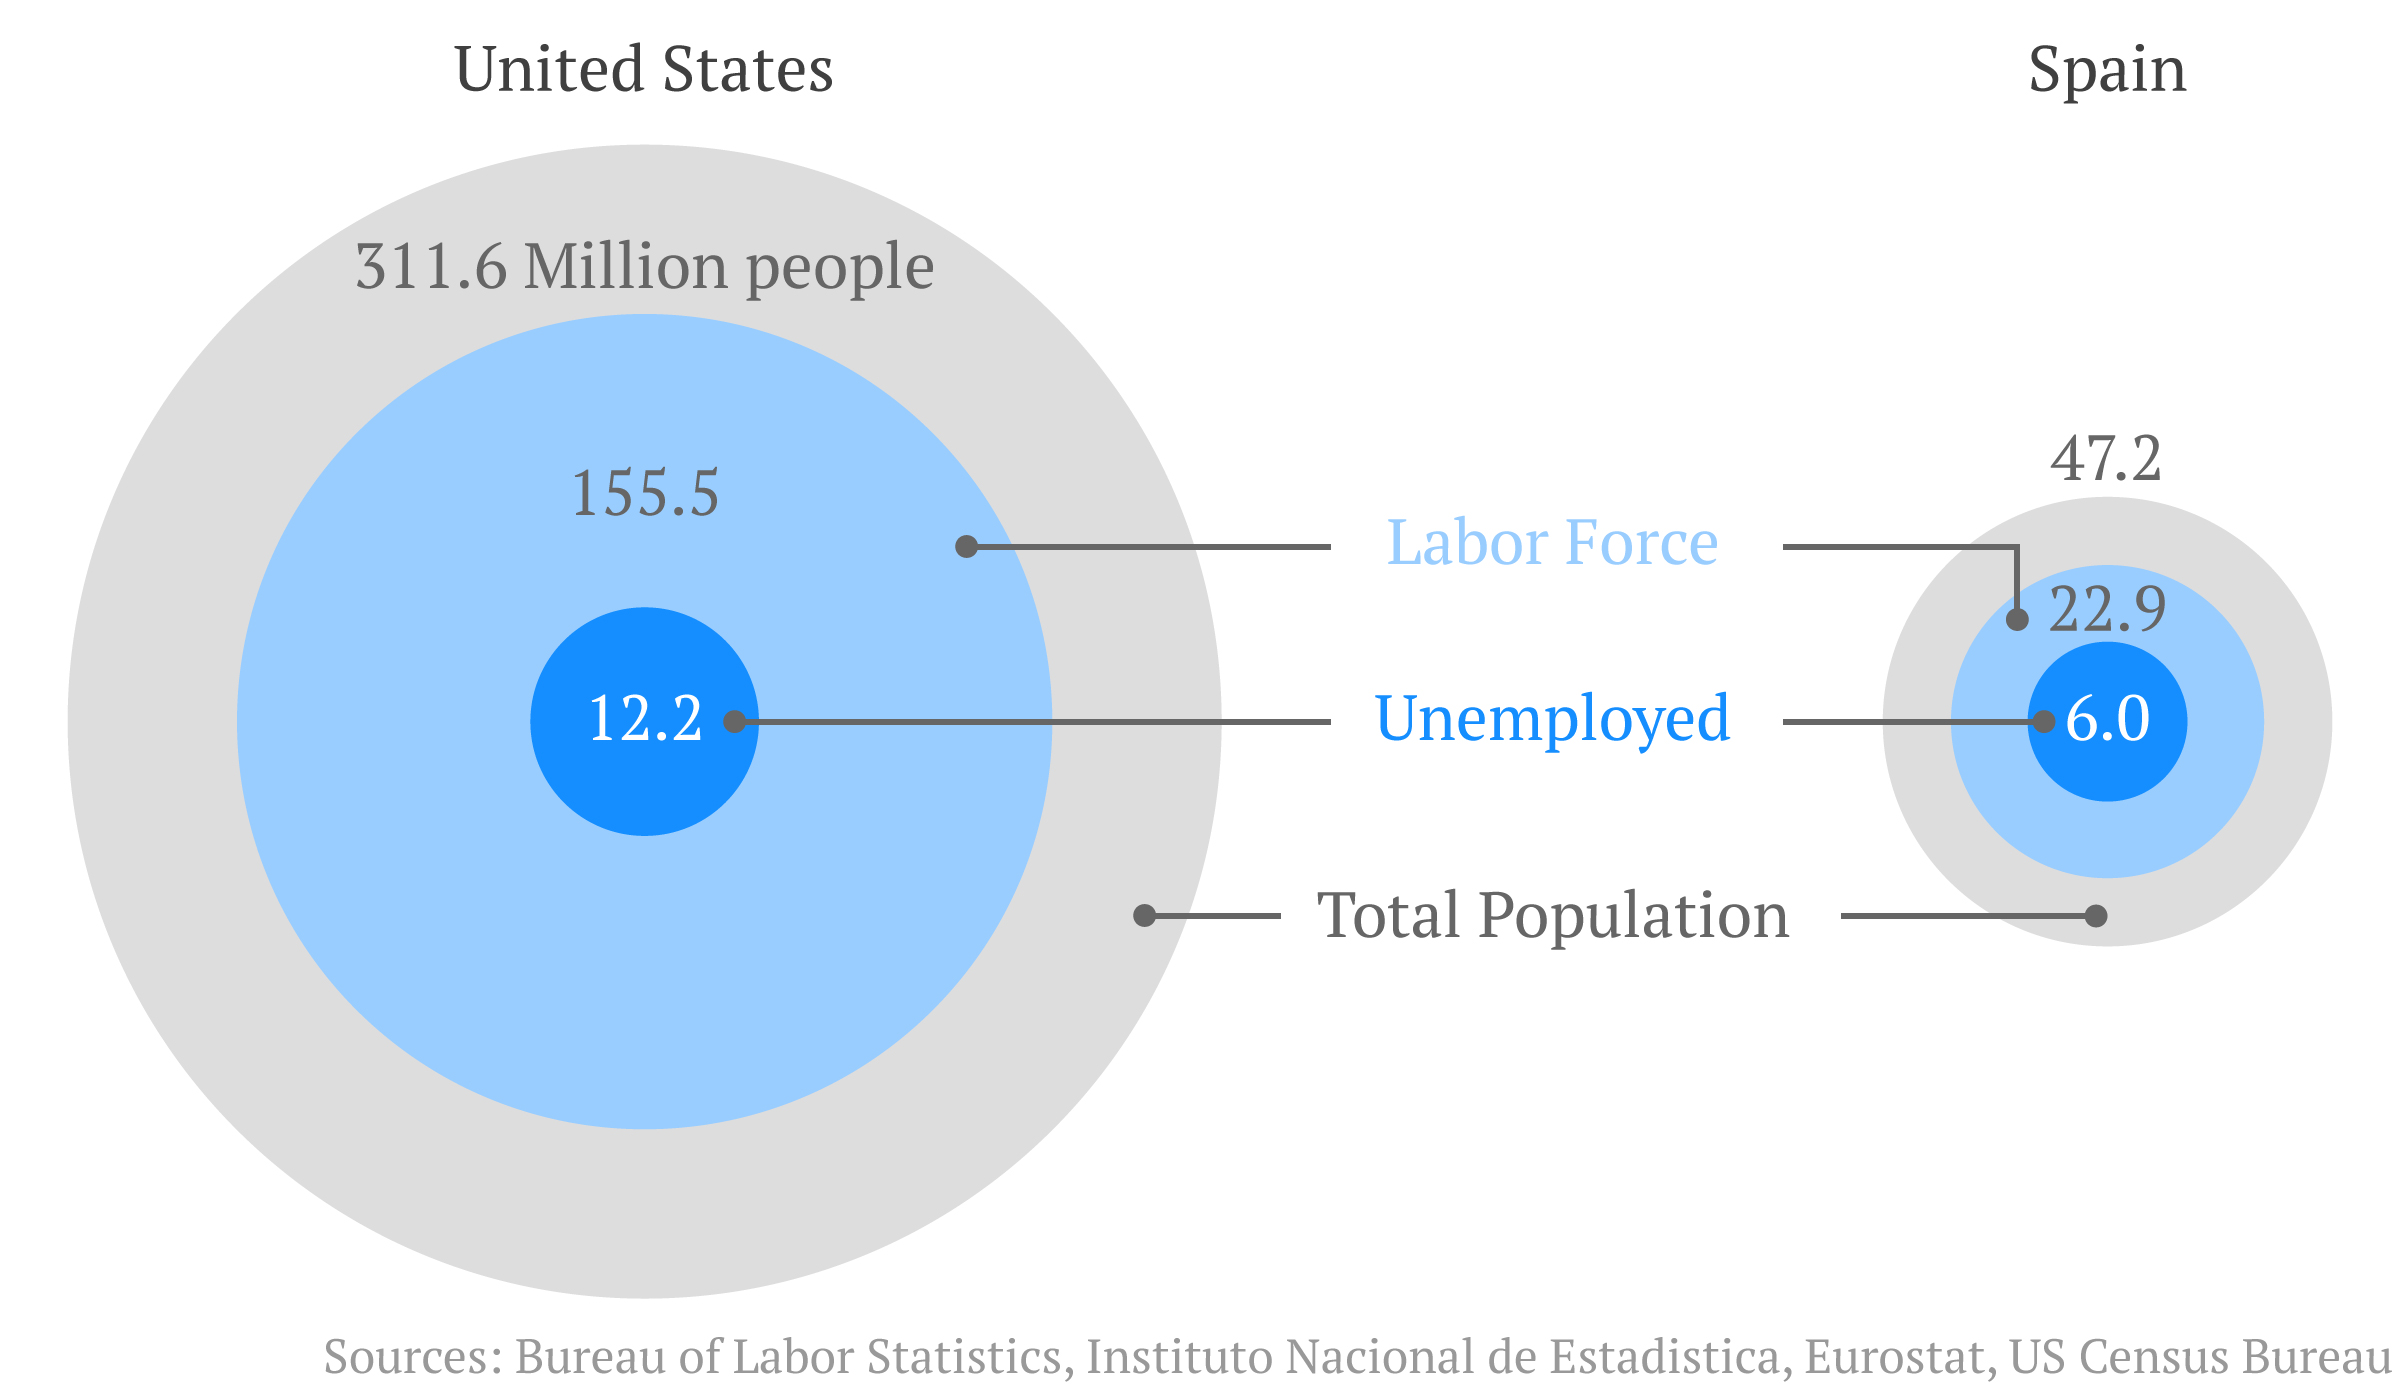 Labor in spain vs Labor in the US